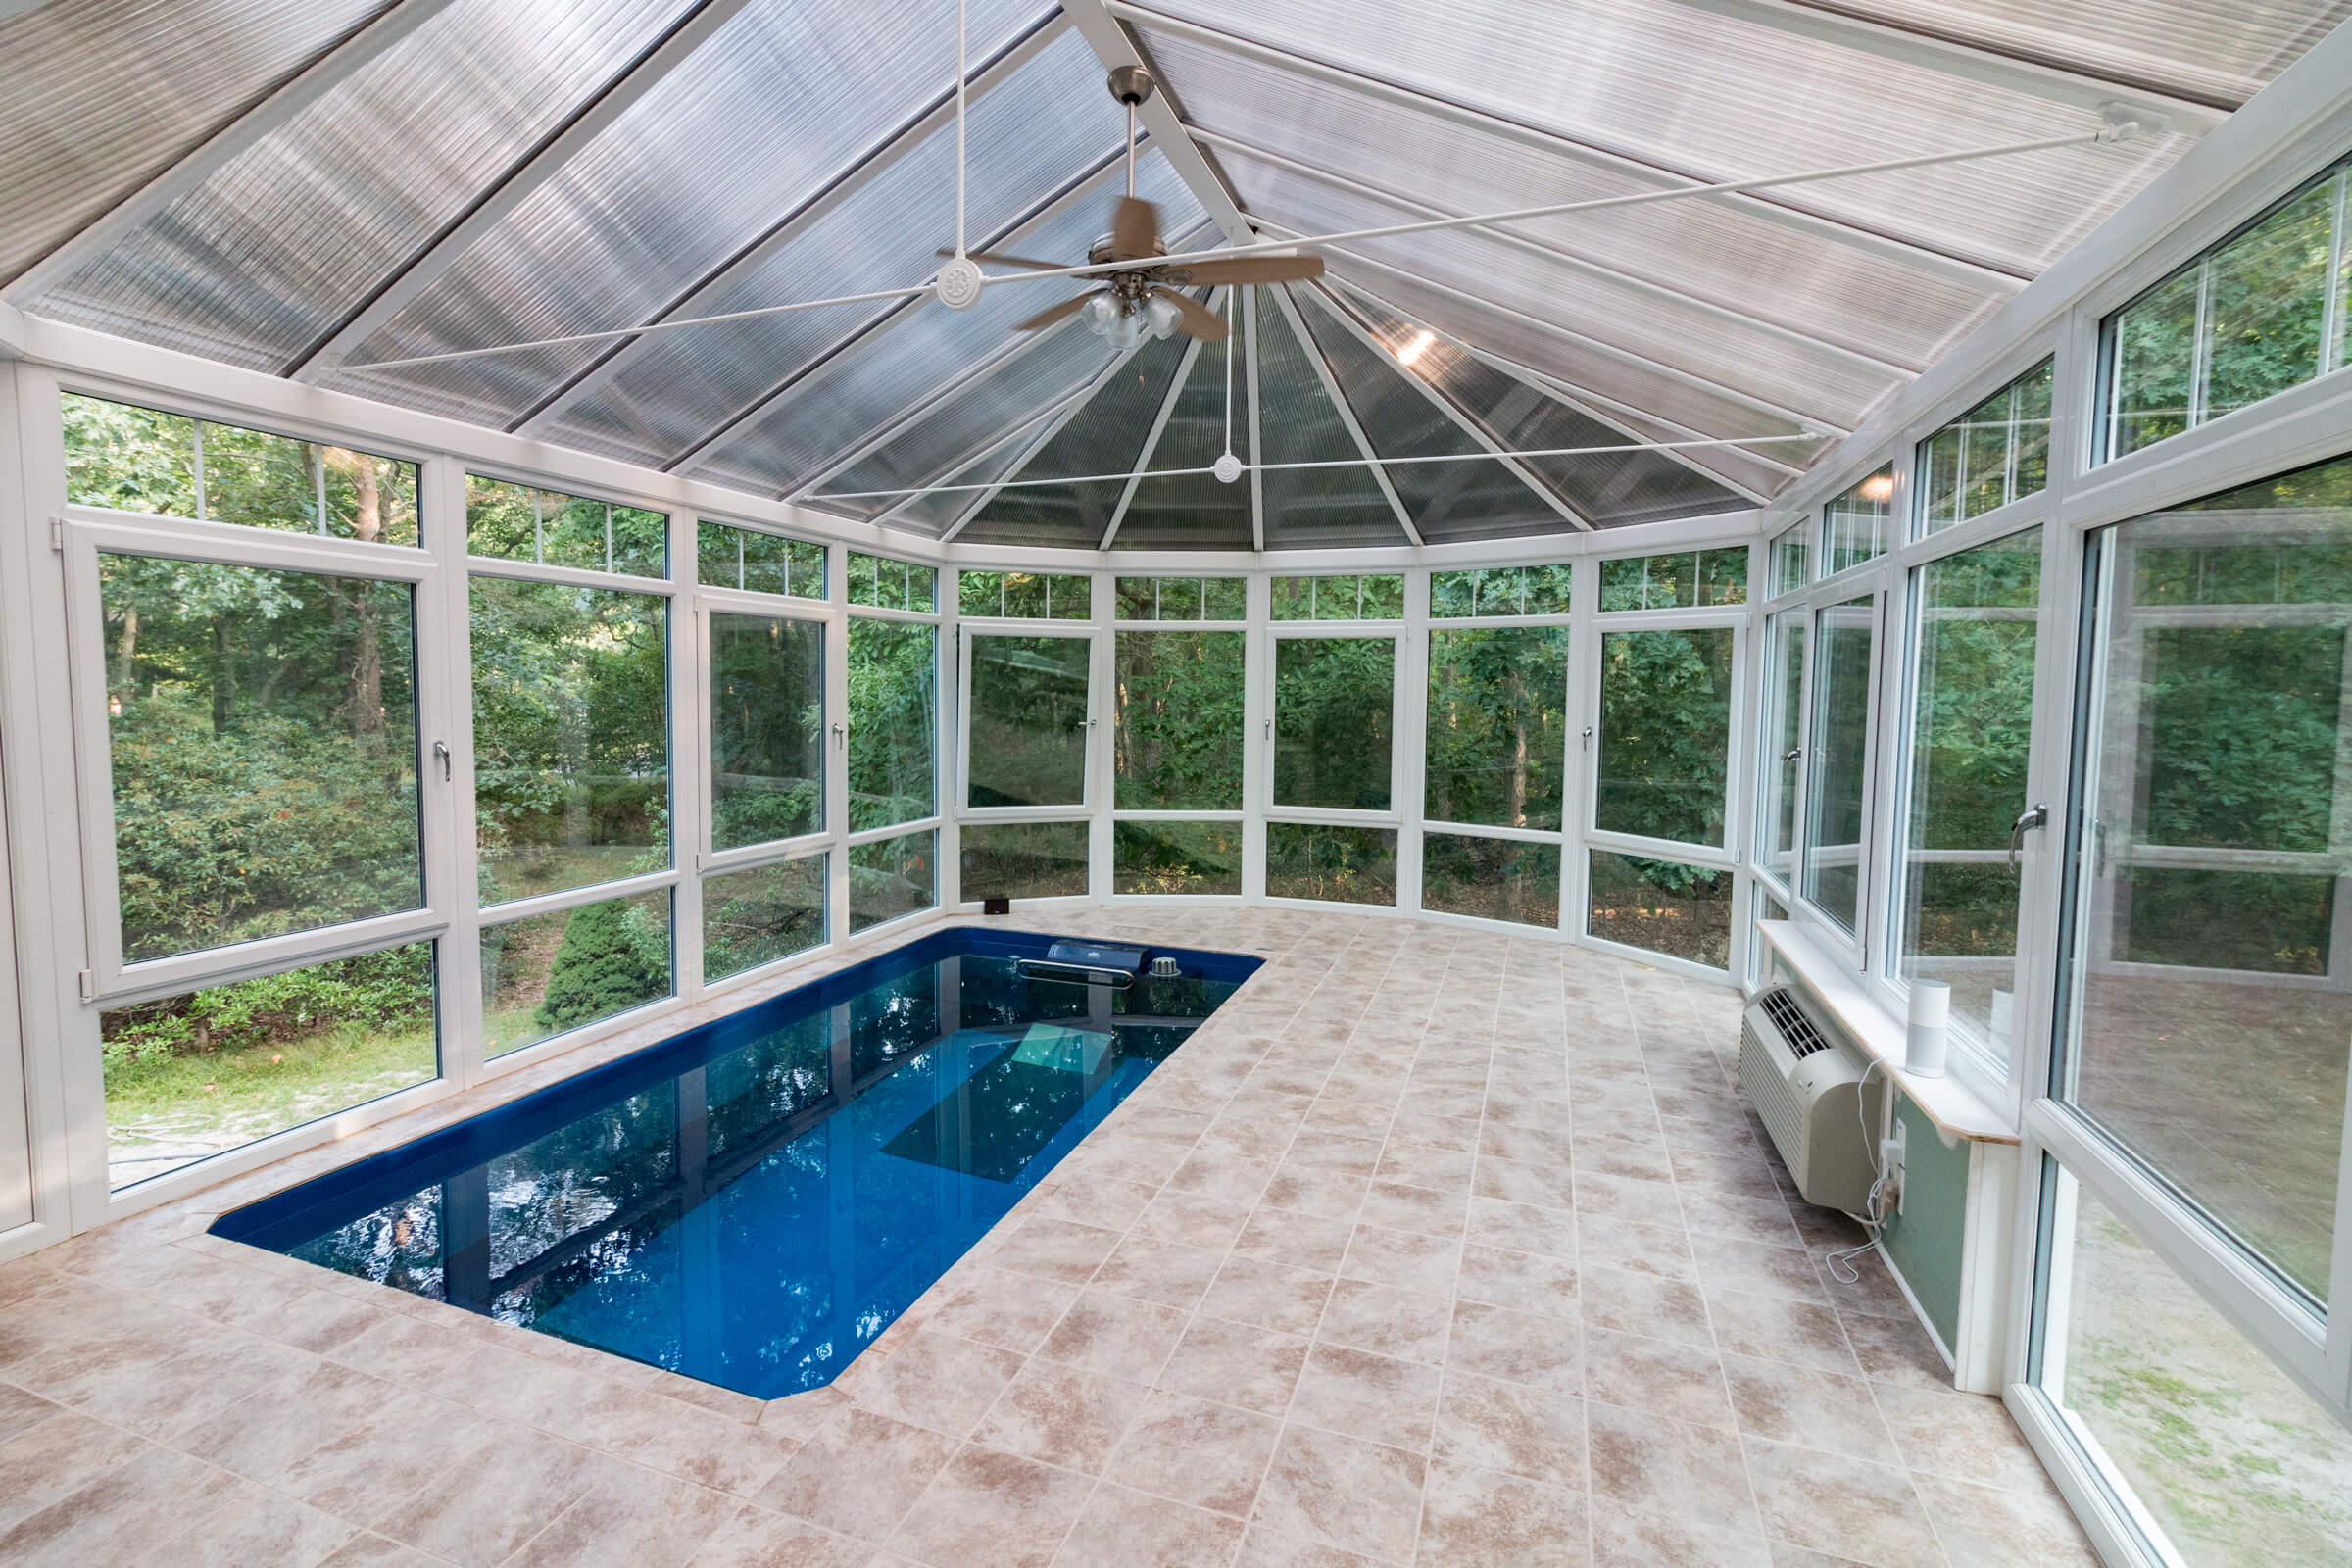 a fully in-ground Endless Pool in a conservatory